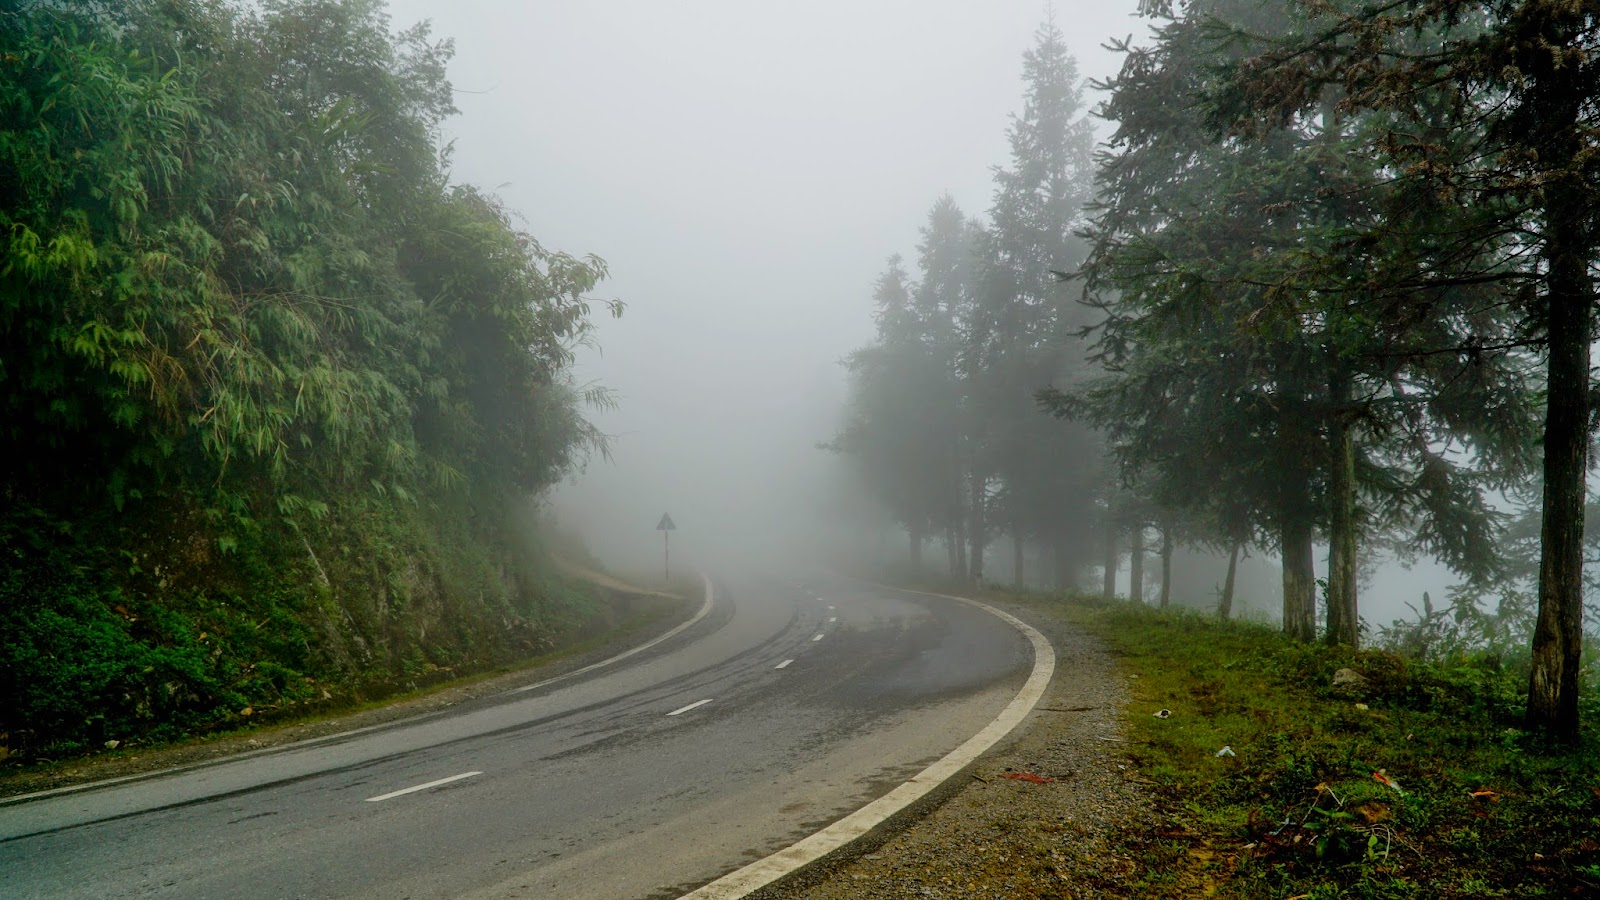 Road into the foggy unknown